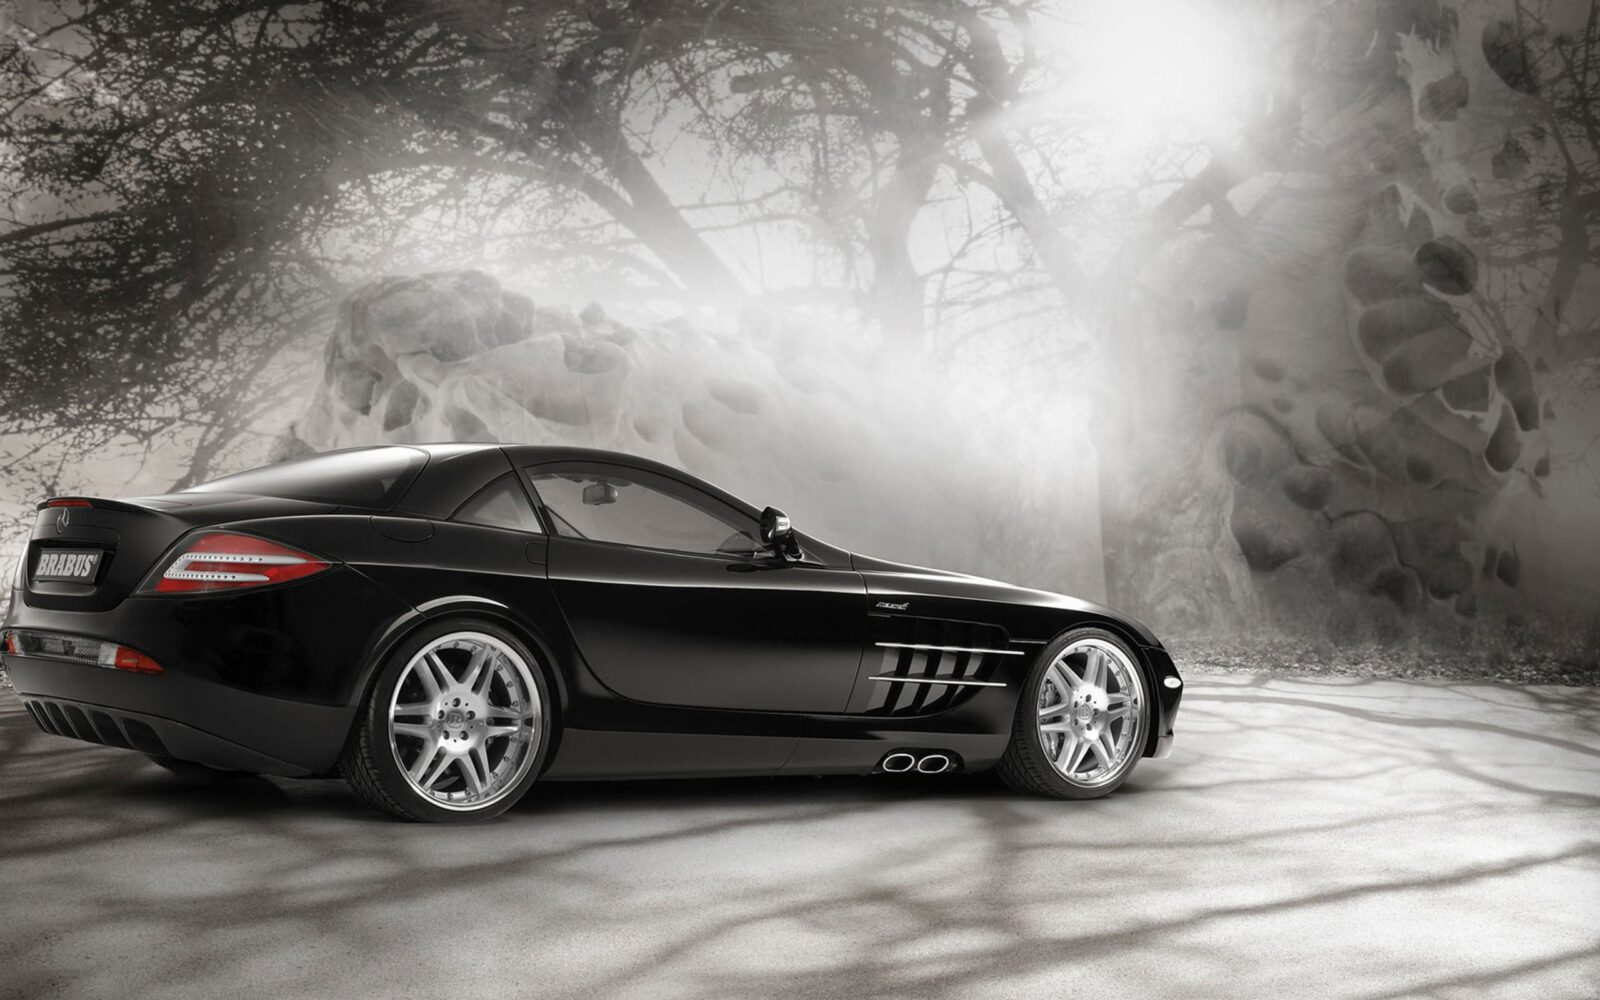 Mercedes slr mclaren wallpapers hd download for Best looking mercedes benz models